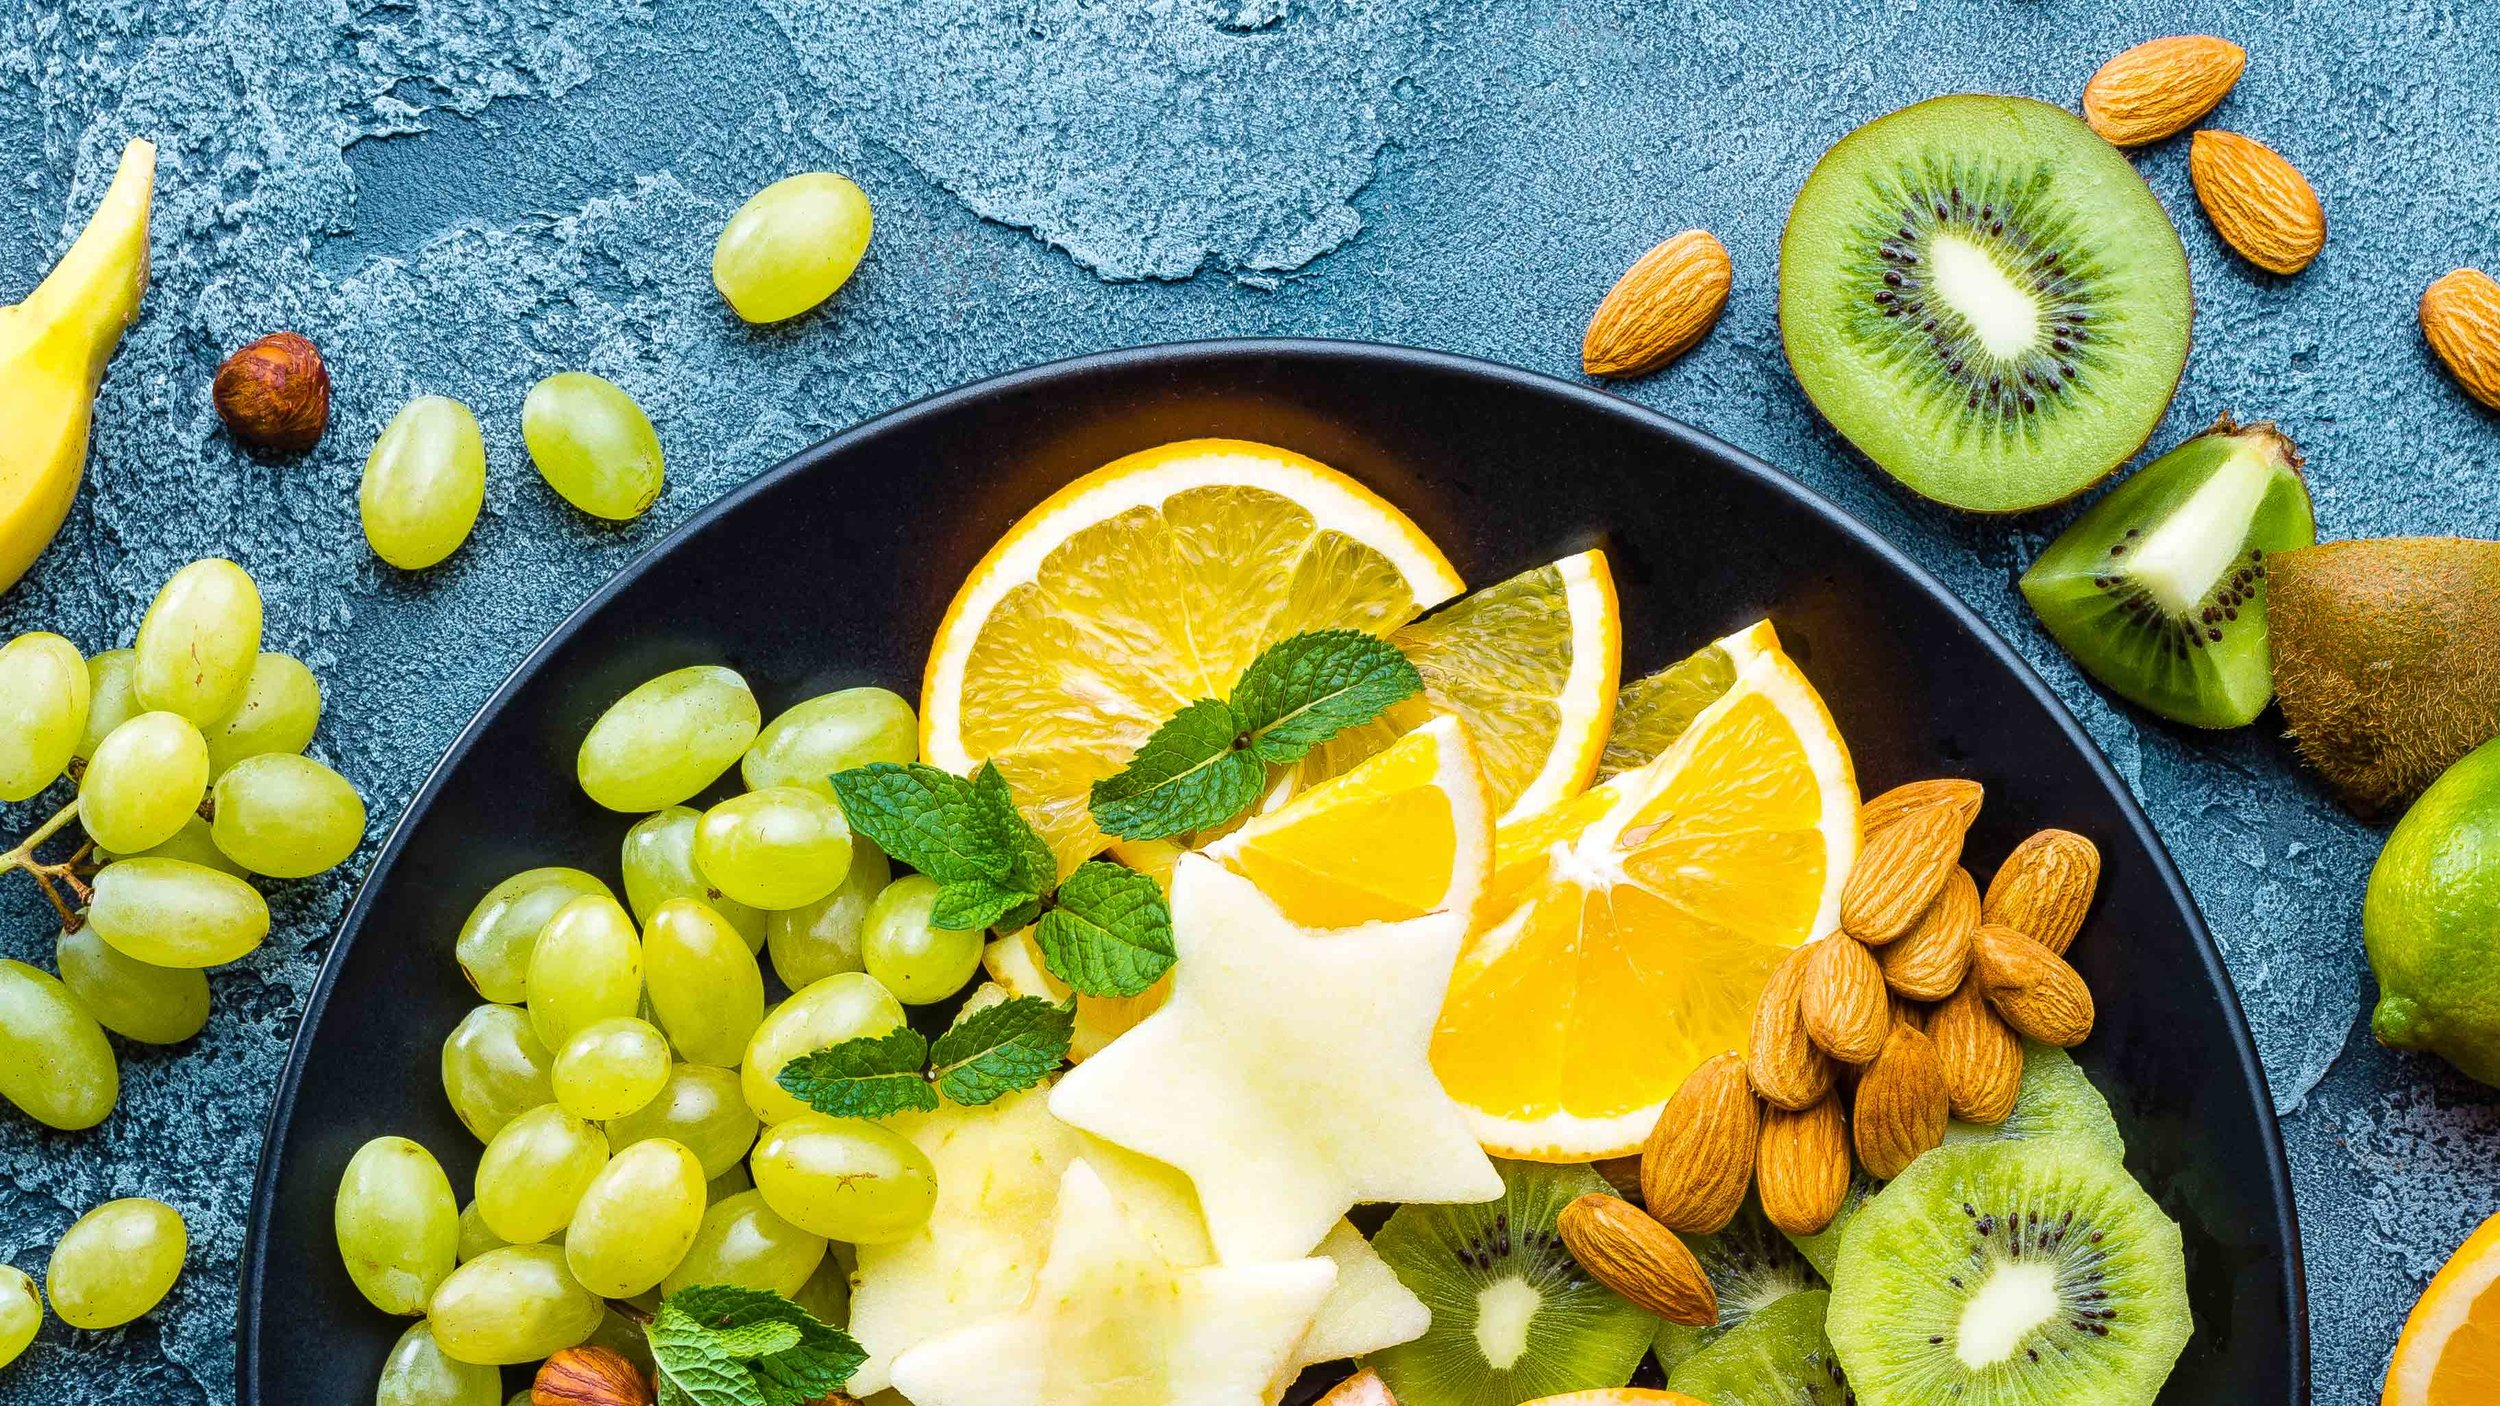 Healthy snacks to pack on the go